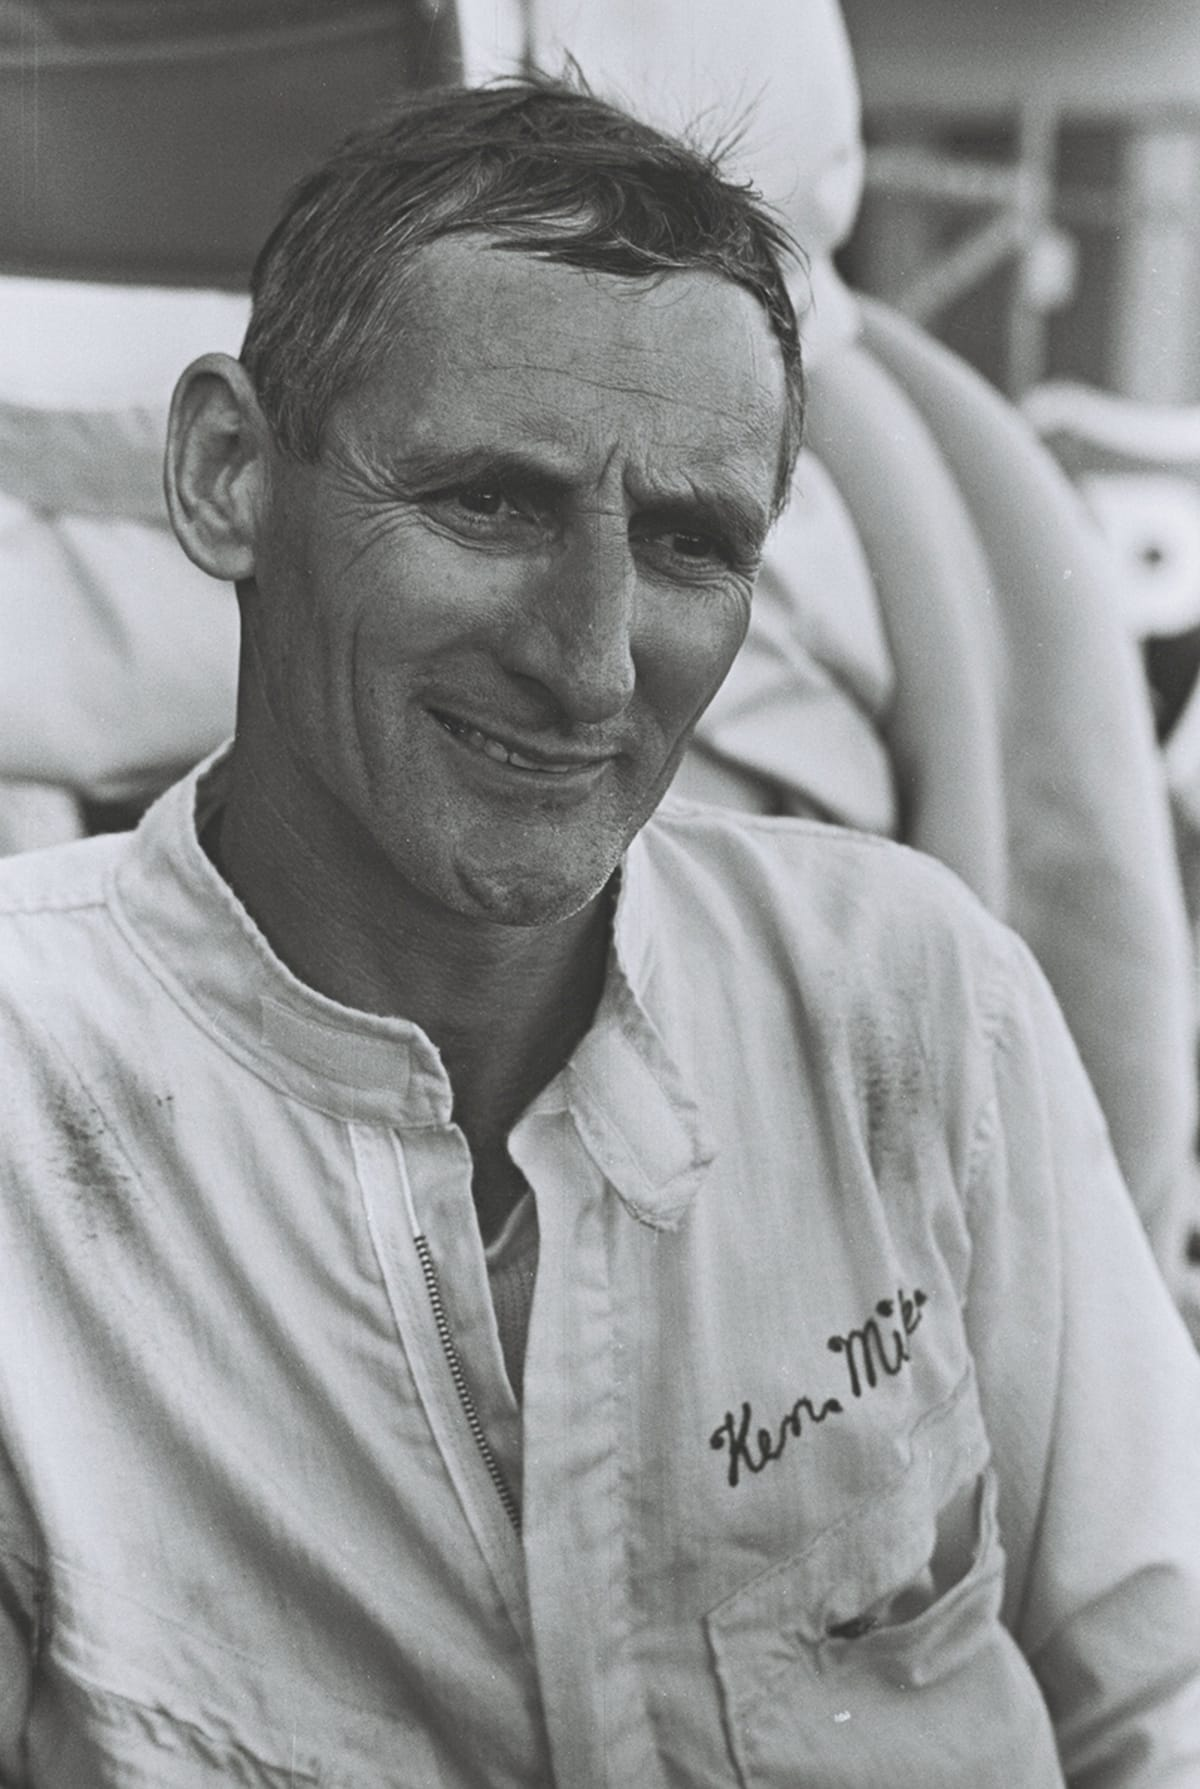 Black-and-white photo of smiling man